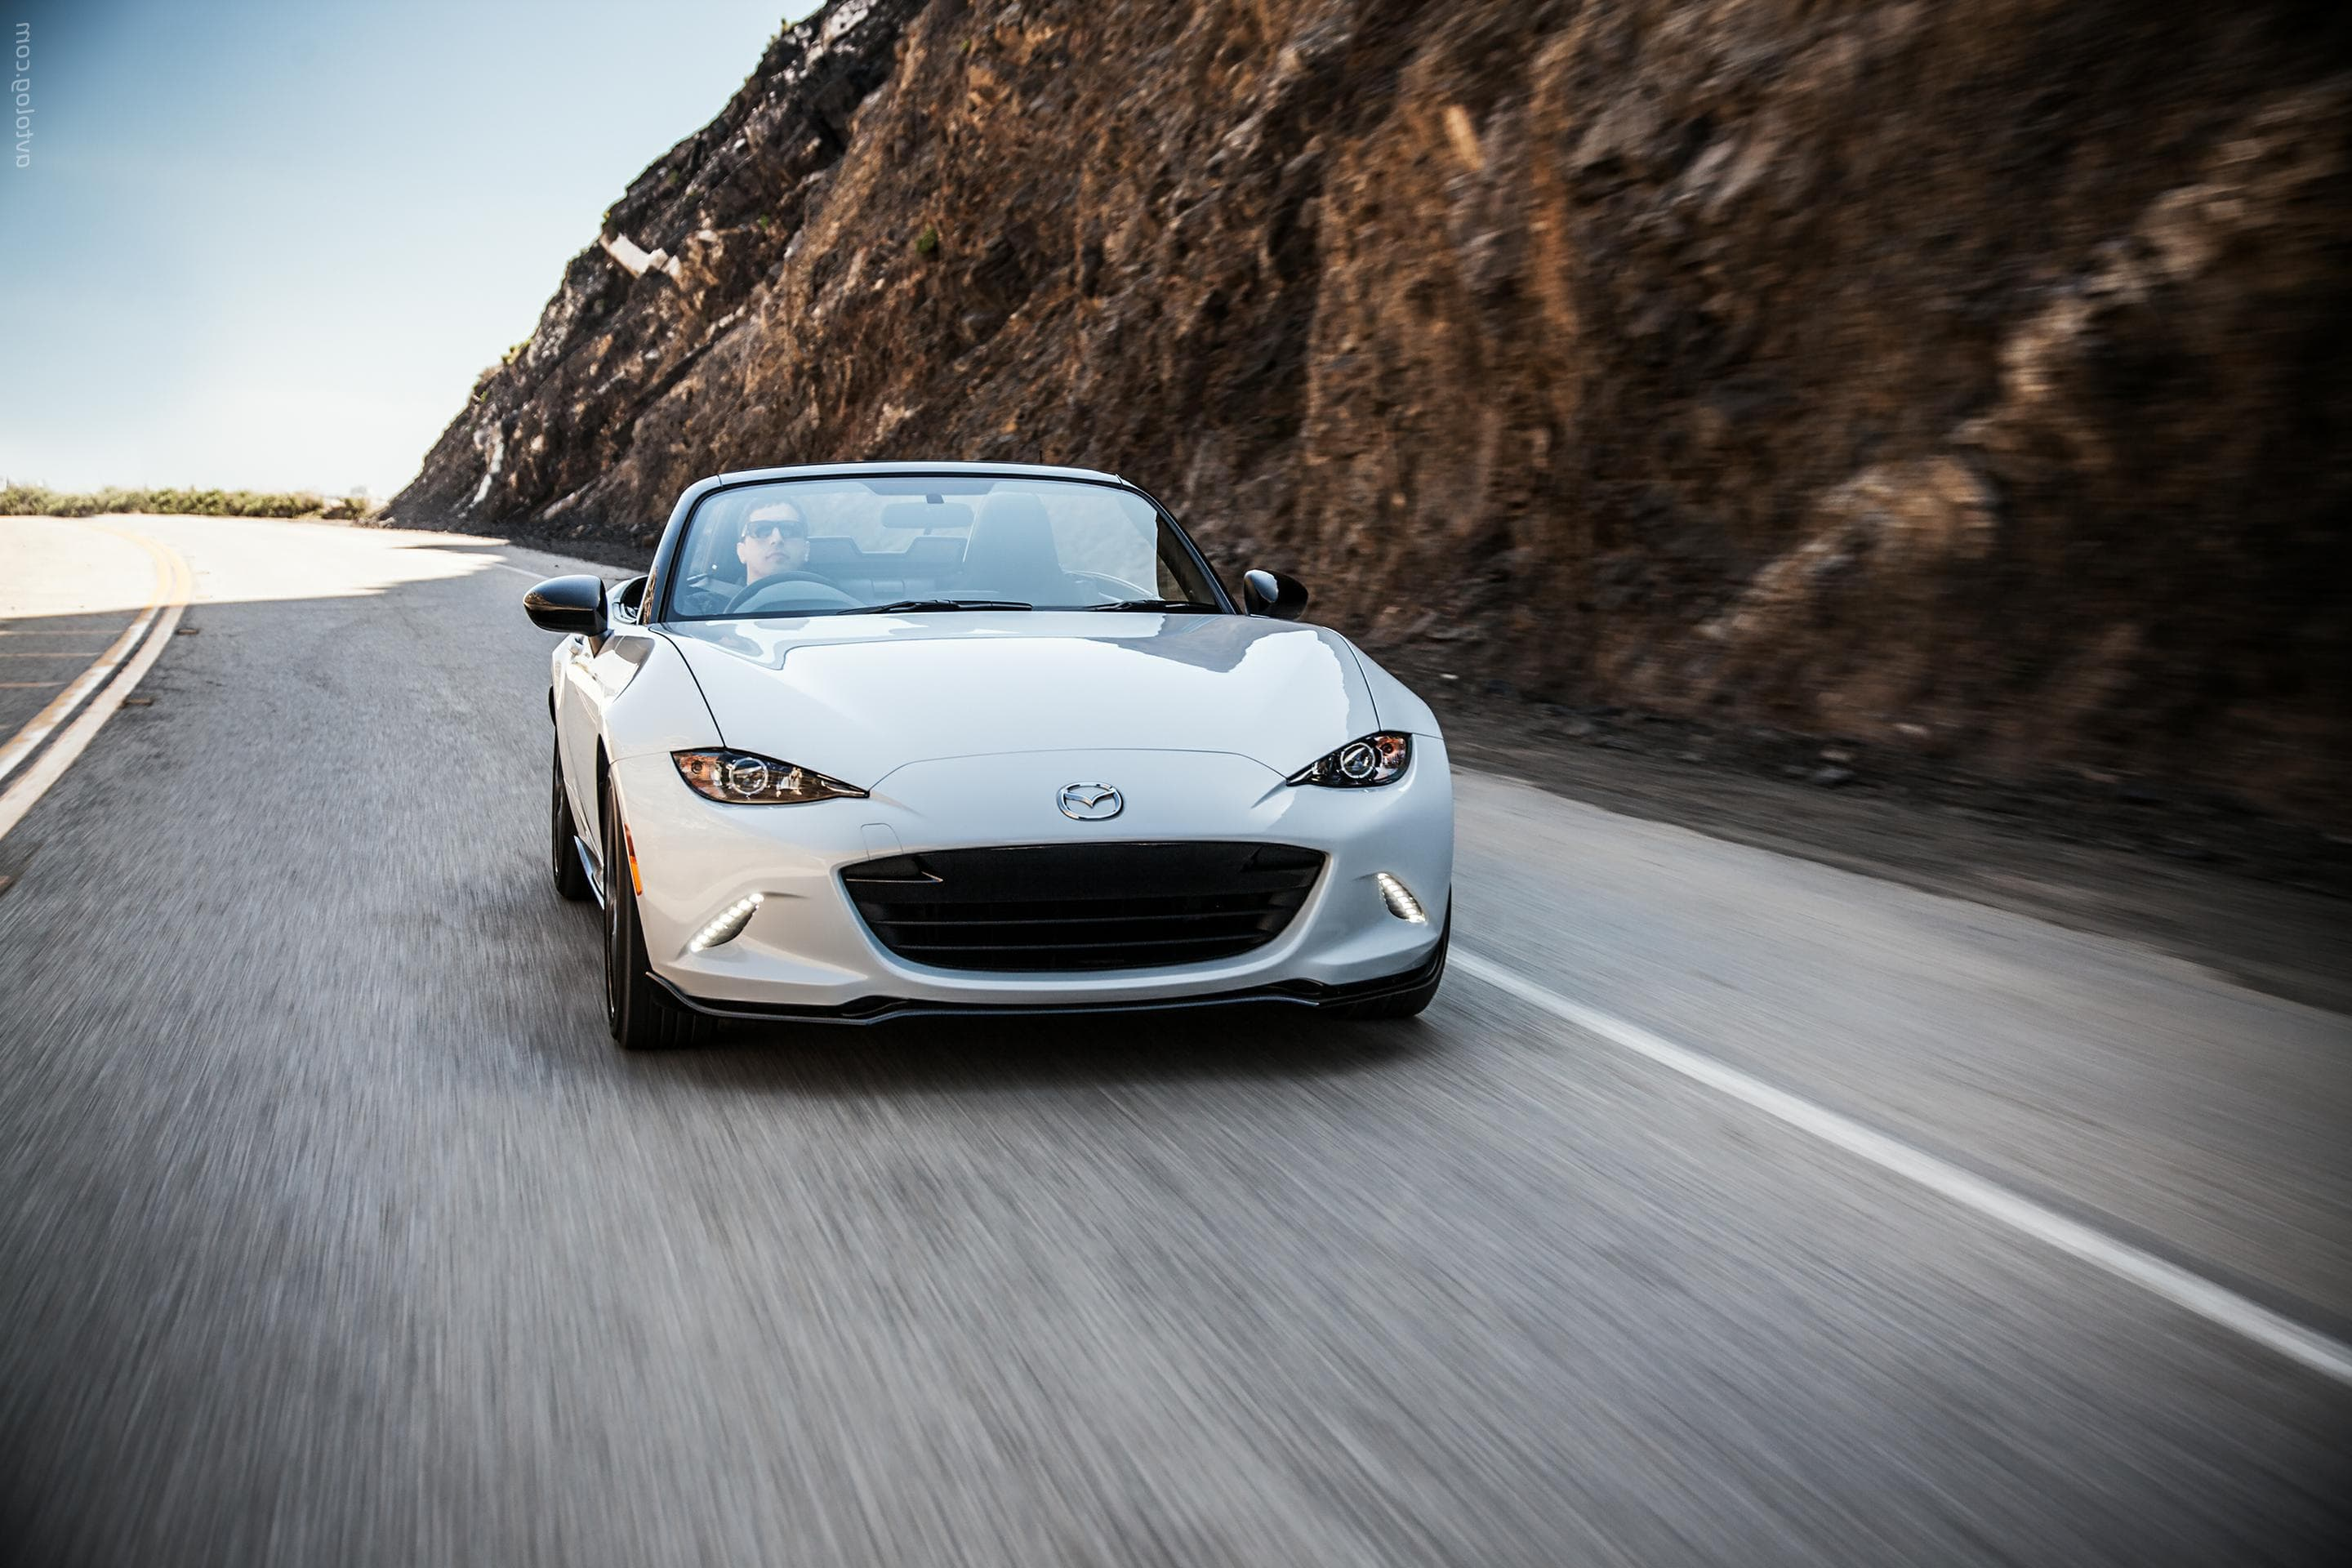 2016 Mazda Mx 5 Miata Wallpapers High Quality Resolution Download